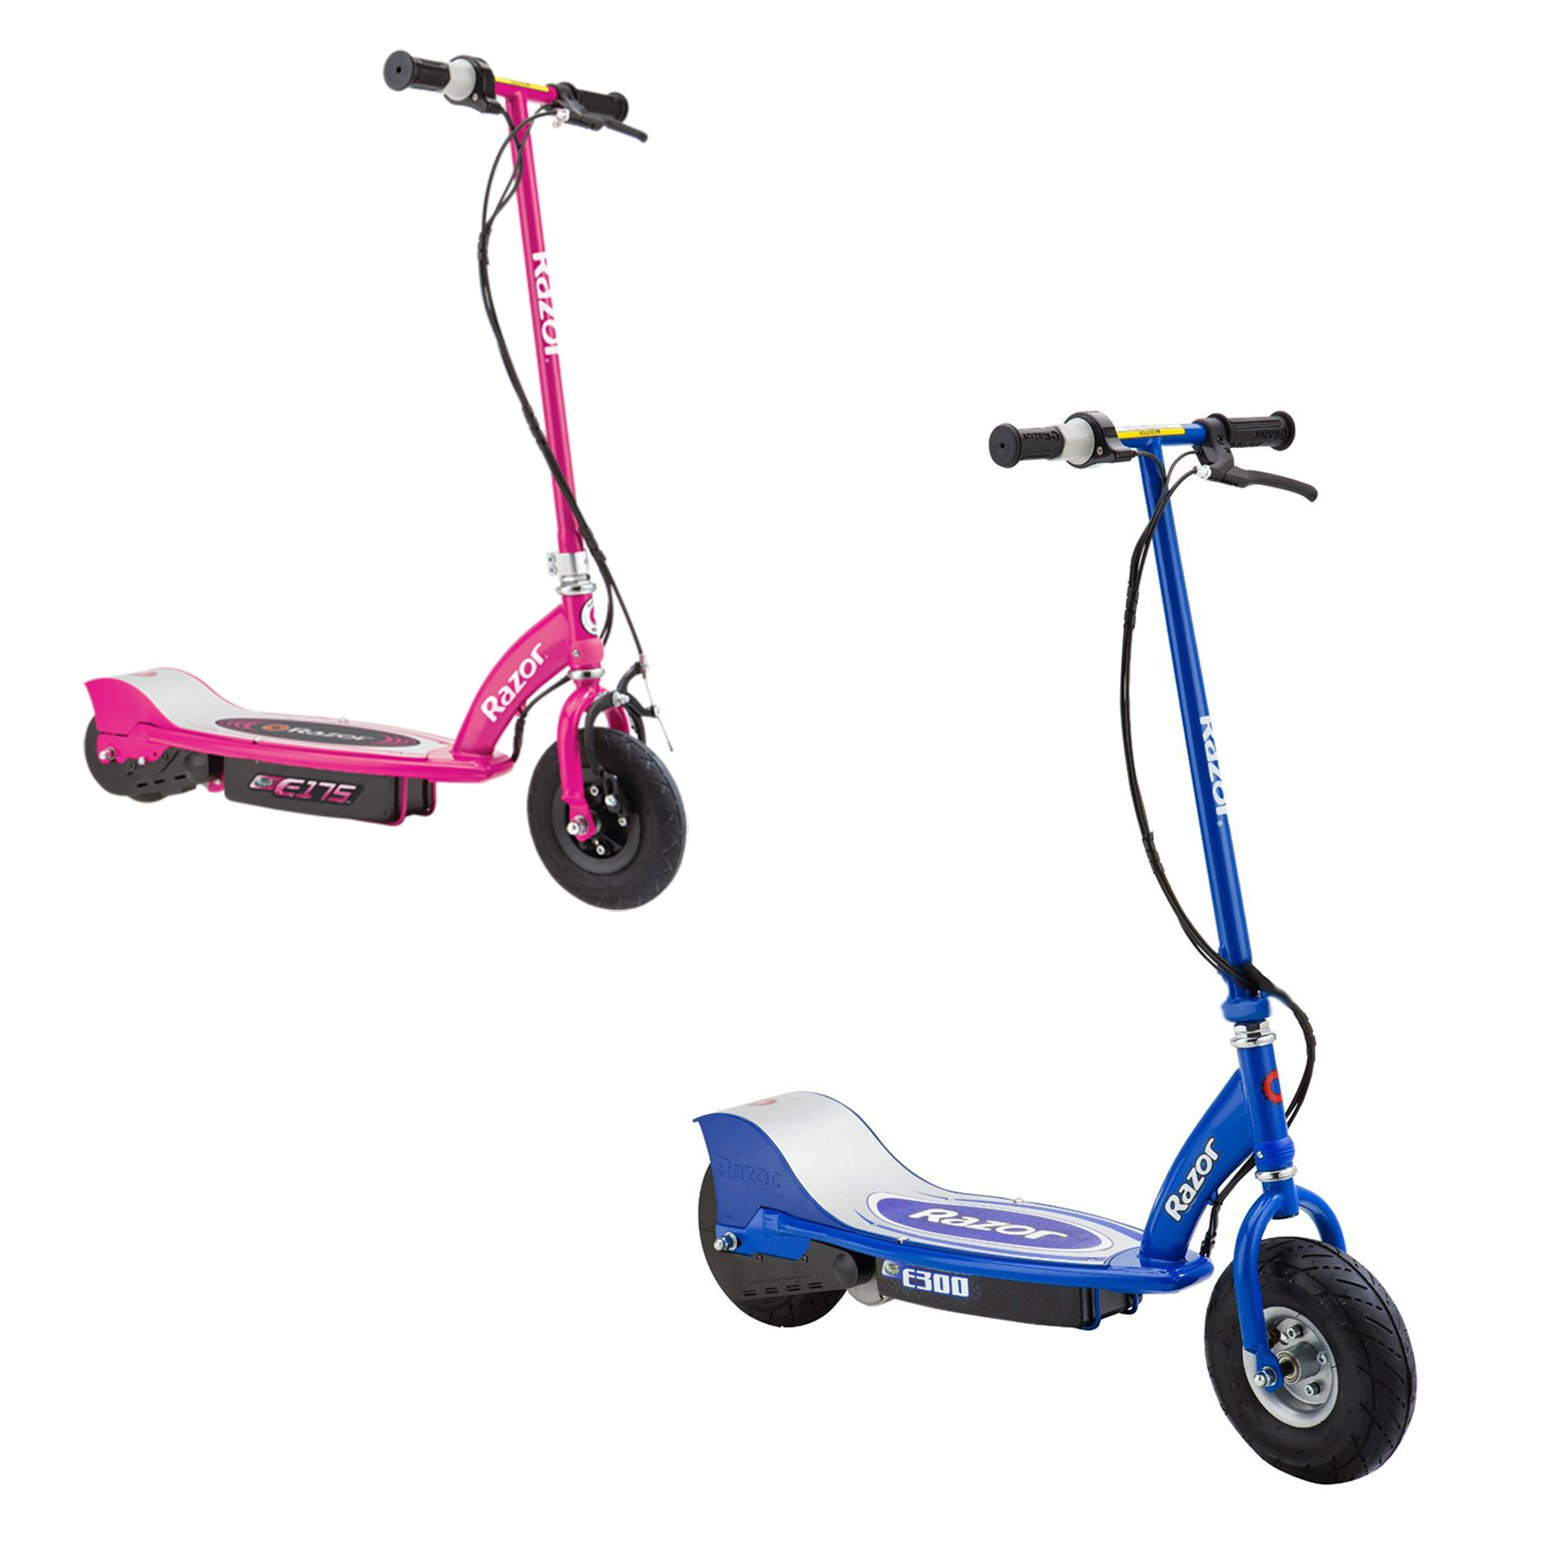 Razor Electric Rechargeable Motorized Ride On Kids Scooters, 1 Blue & 1 Pink